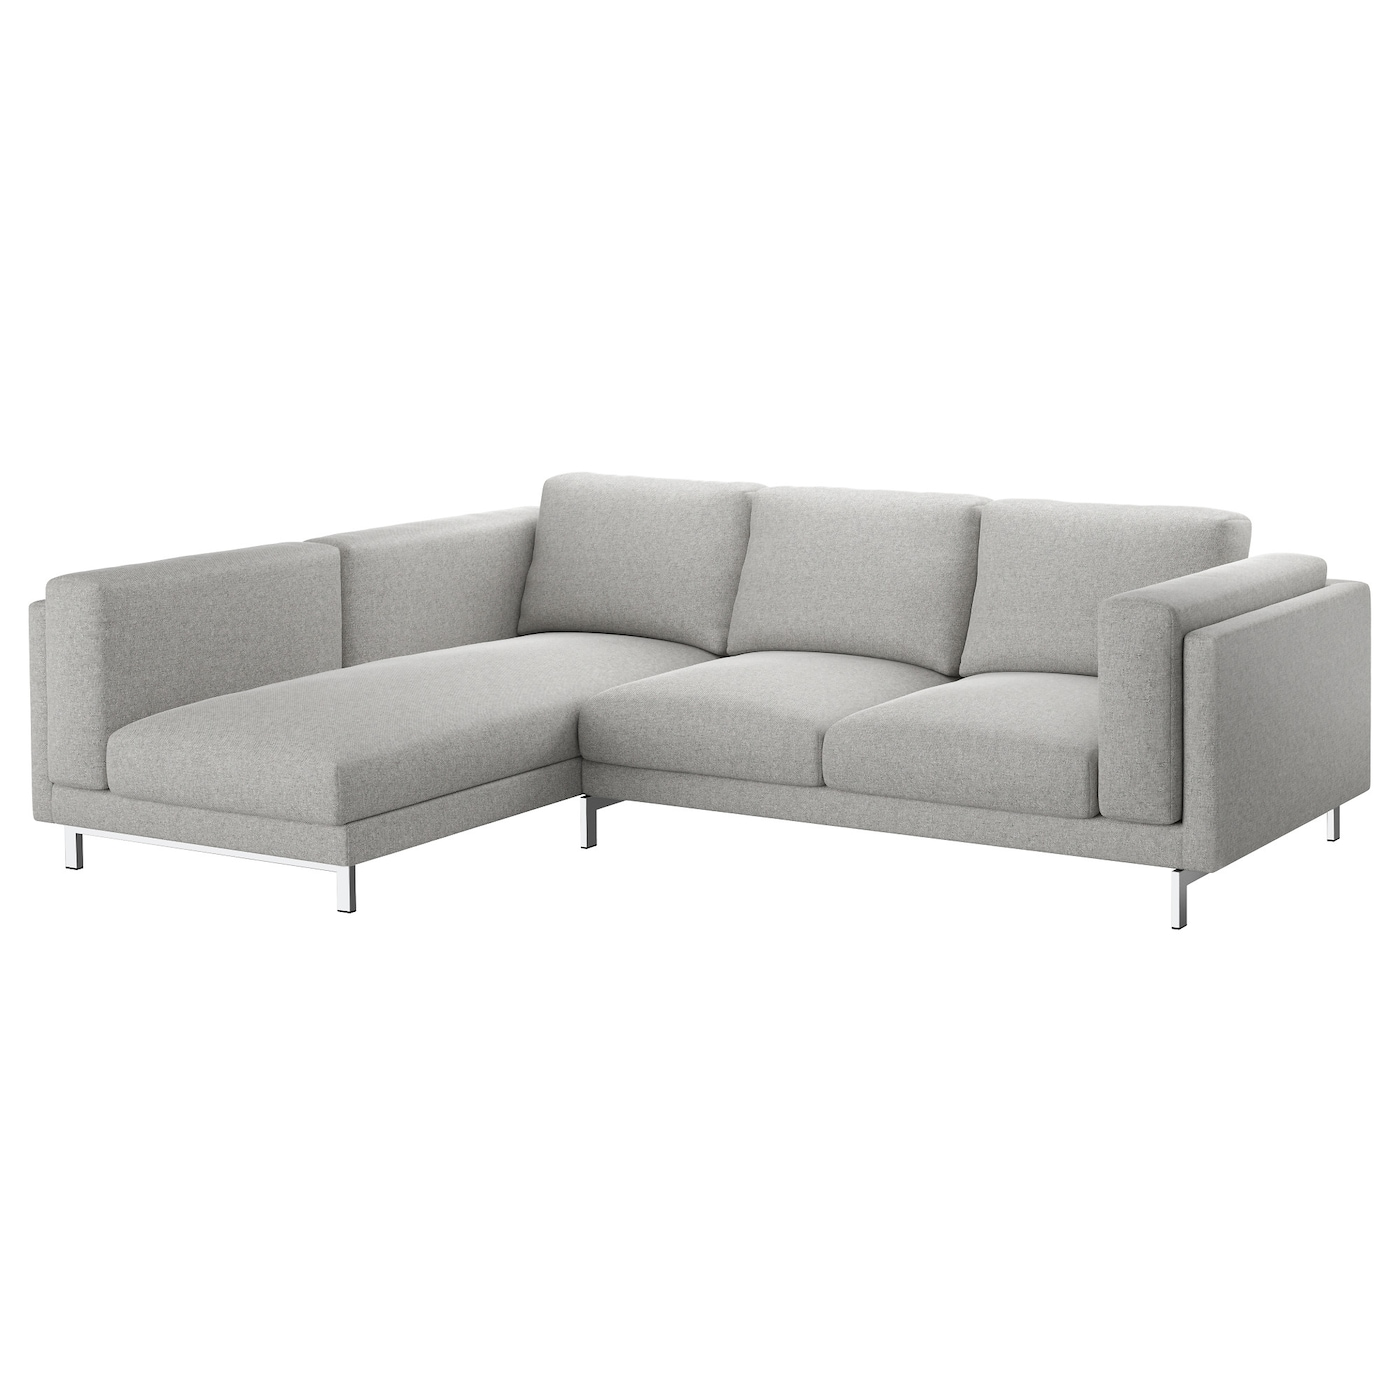 nockeby two seat sofa w chaise longue left tallmyra white black chrome plated ikea. Black Bedroom Furniture Sets. Home Design Ideas